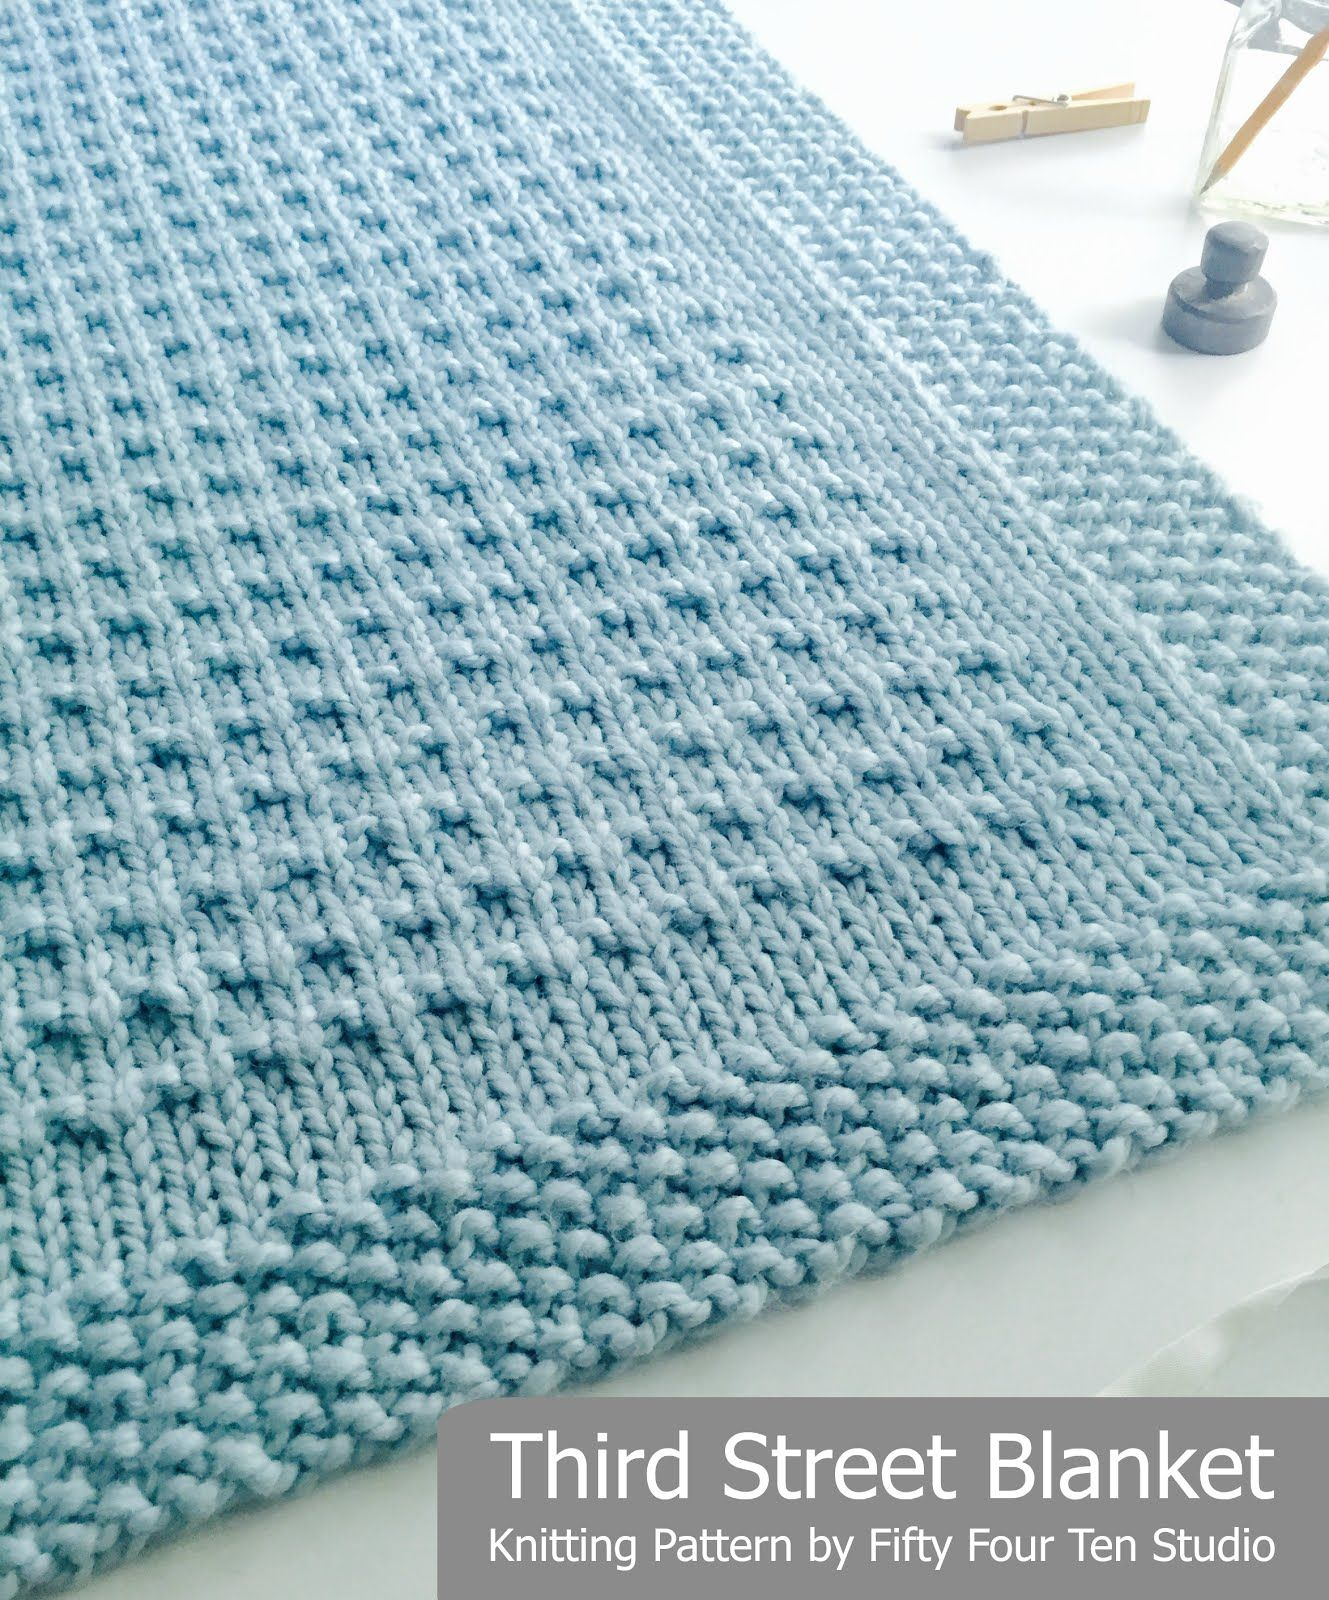 Easy Knitting Patterns Instructions : Third street blanket knitting pattern by fifty four ten